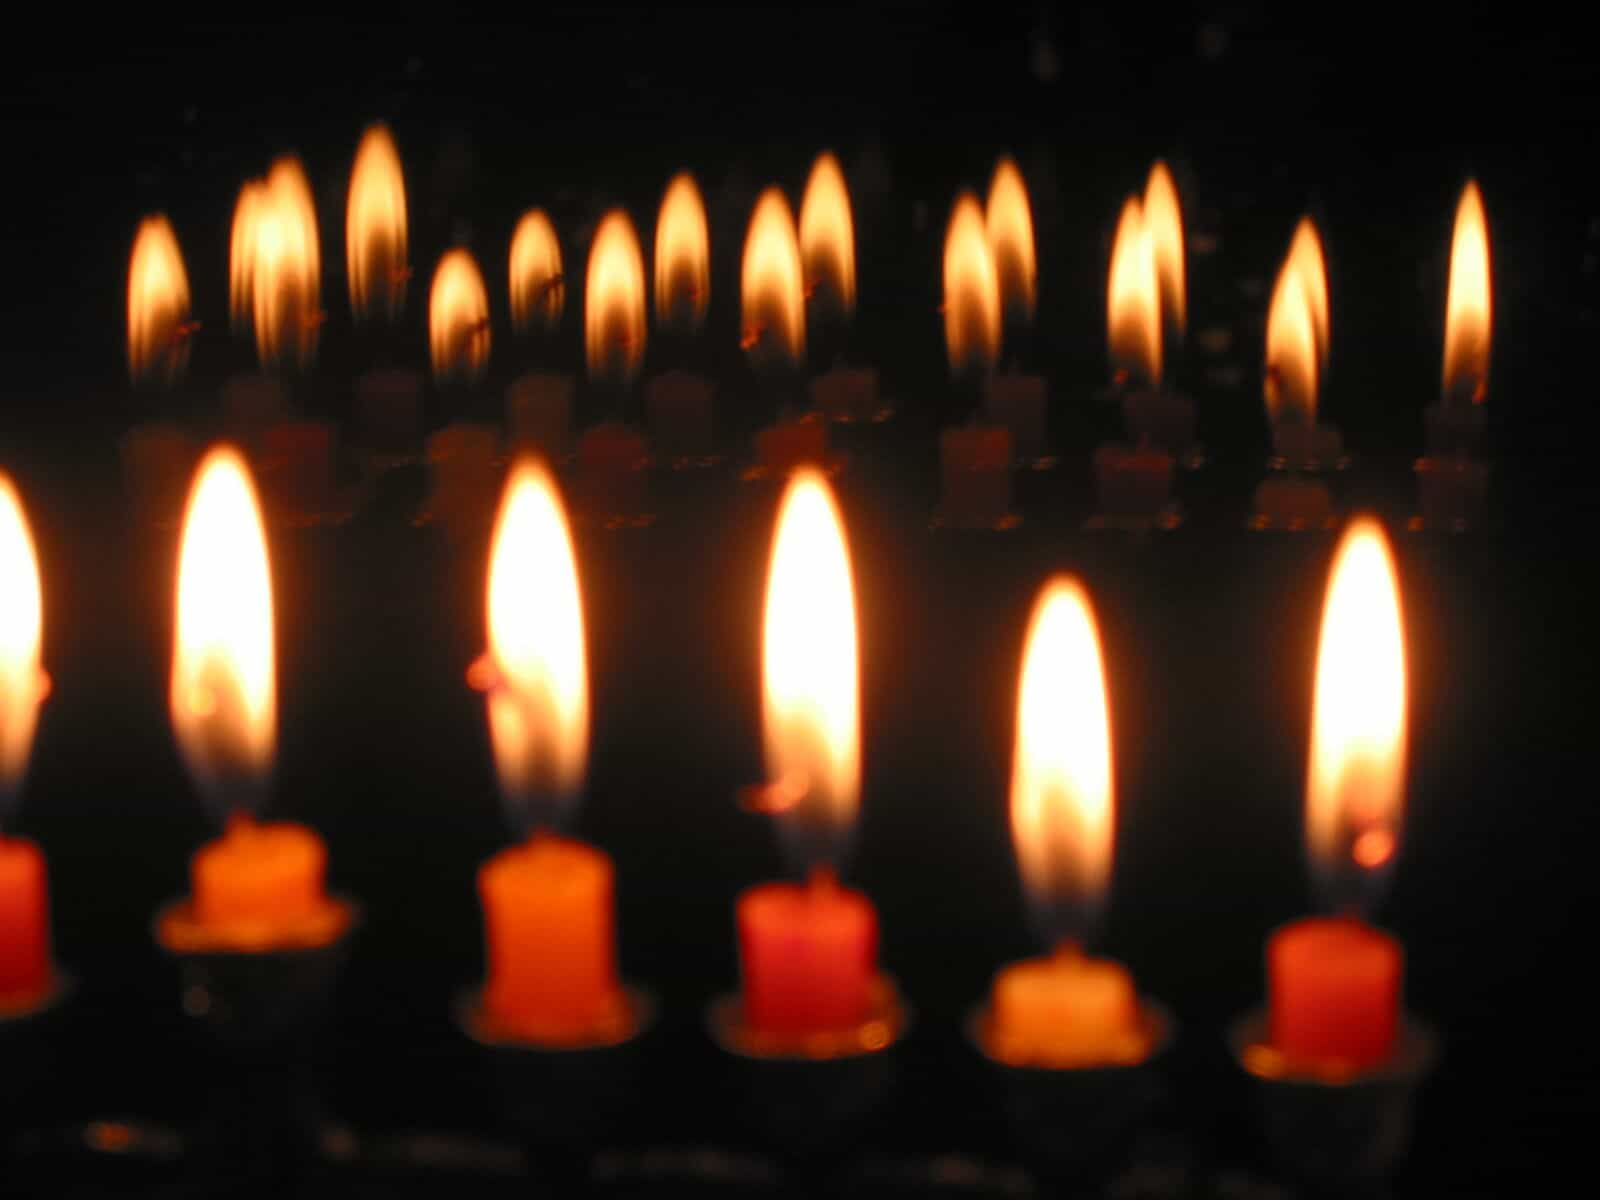 A closeup of candles burning.